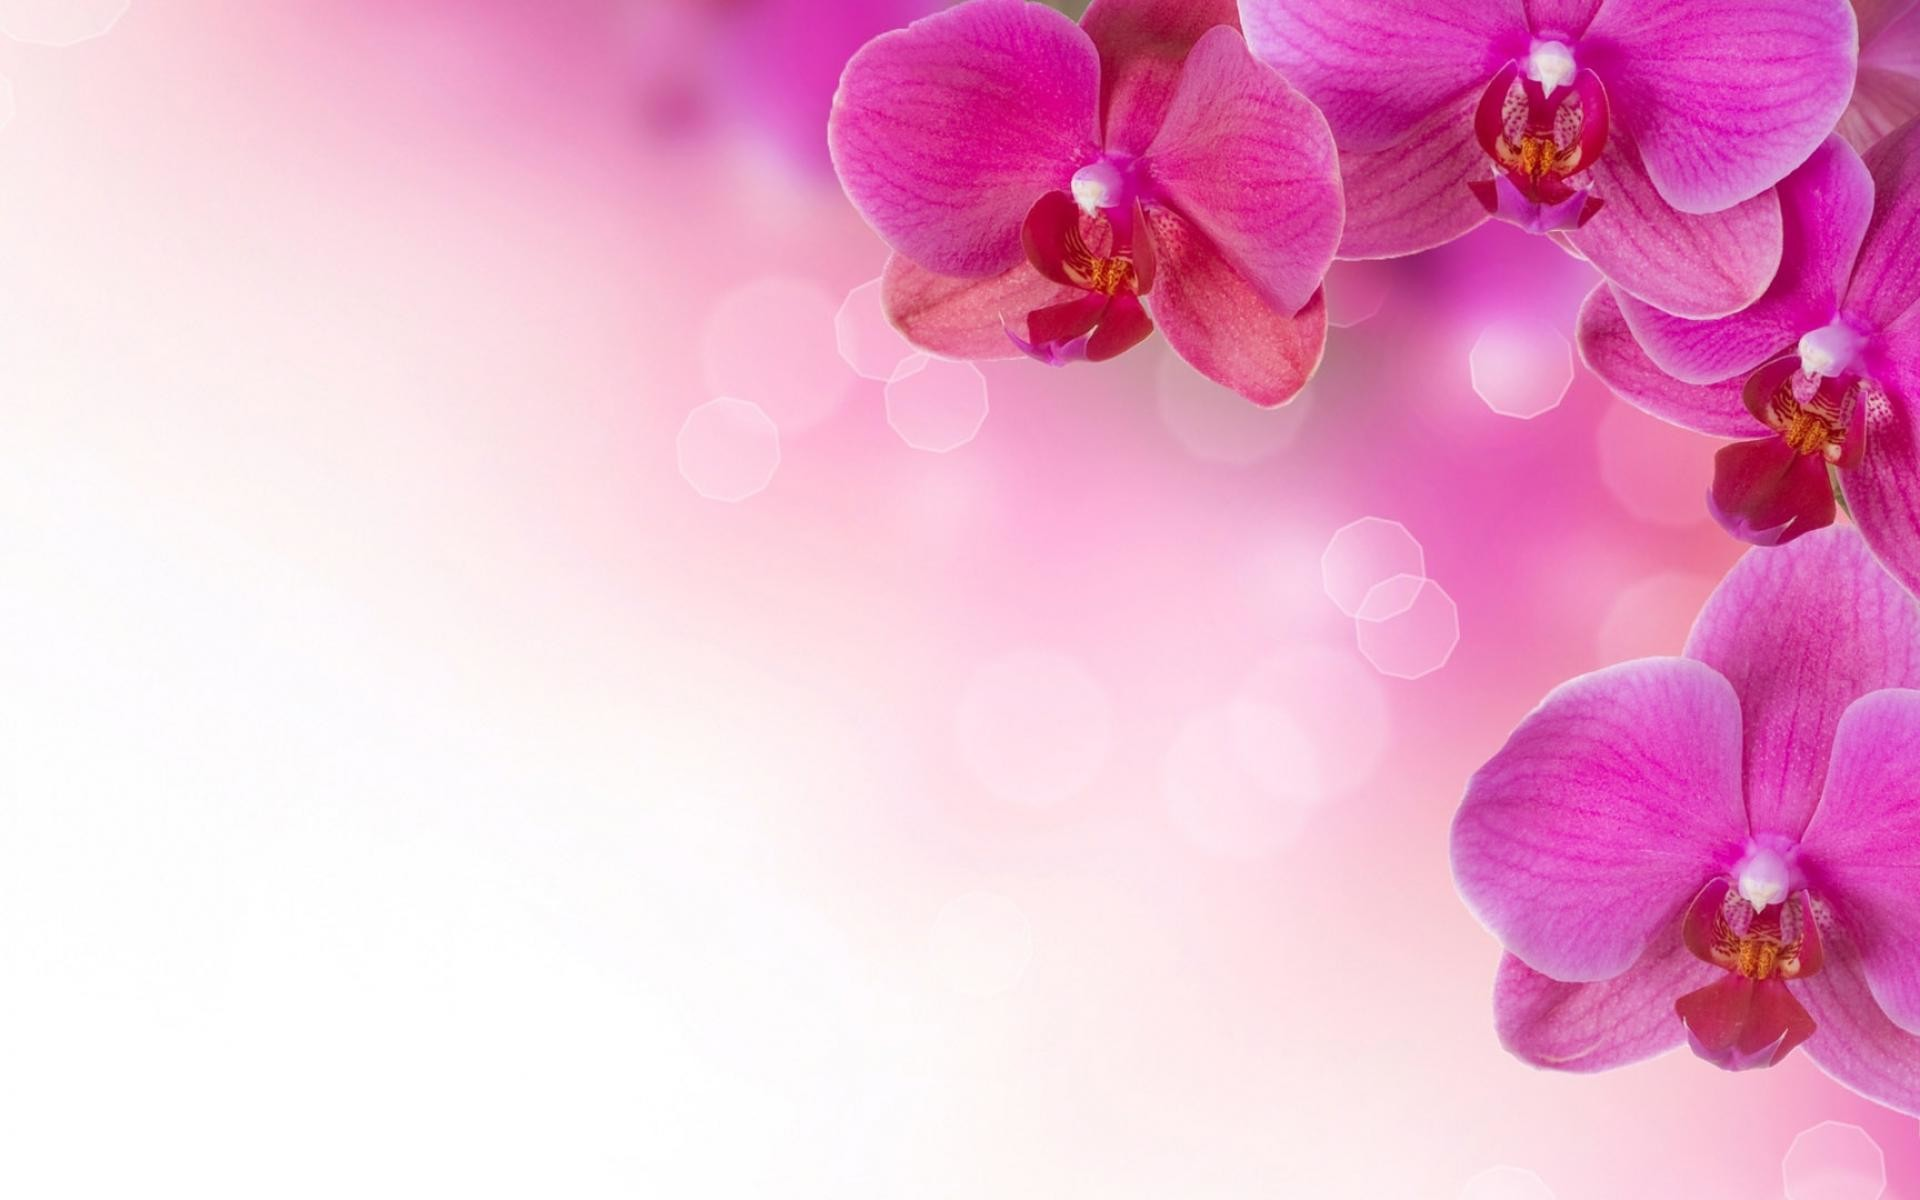 fuschia pink background 37 images